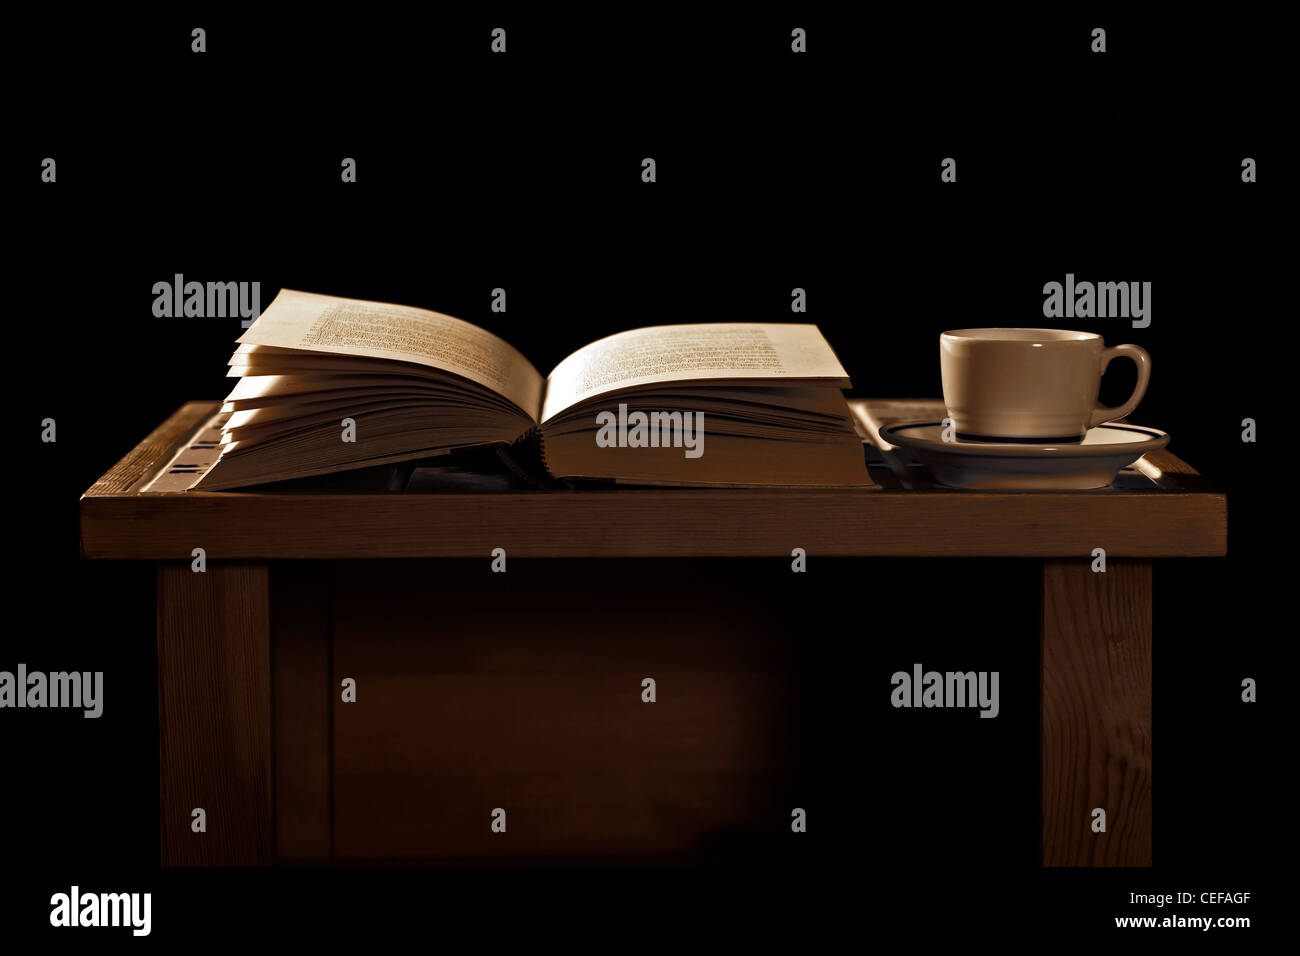 old wooden table with an open book and a cup of coffee - Stock Image